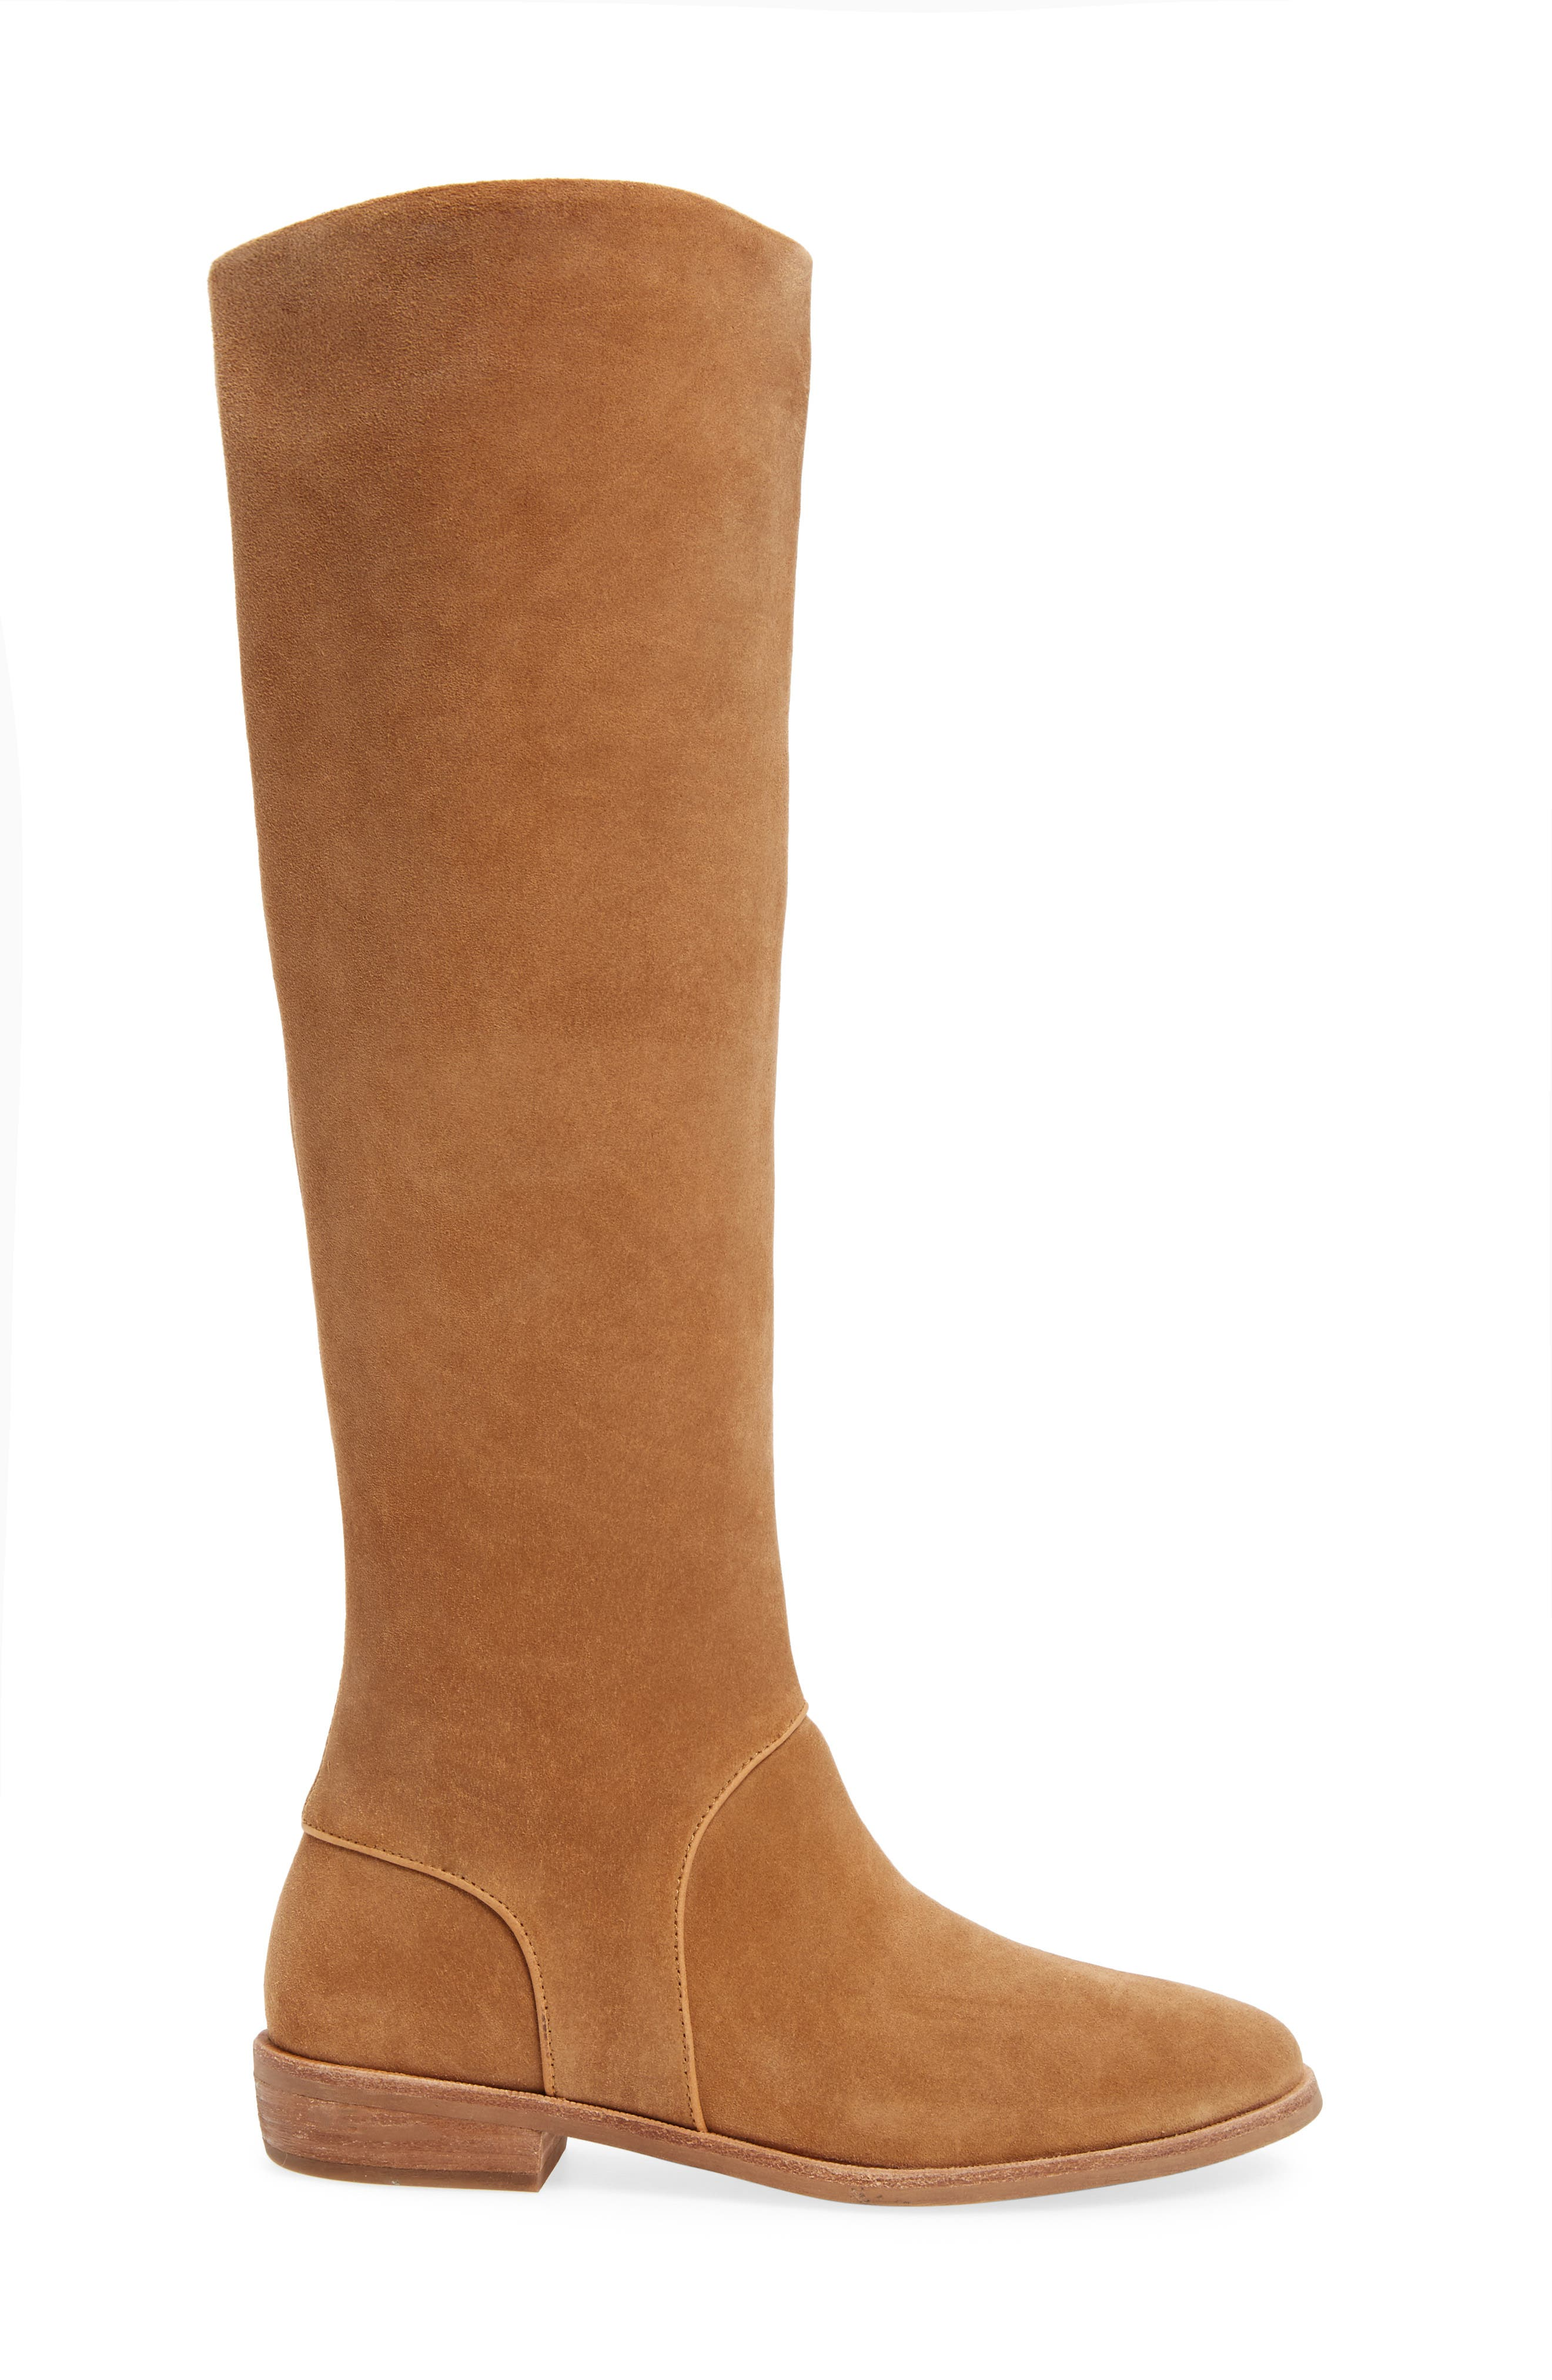 Alternate Image 3  - UGG® Daley Tall Boot (Women)